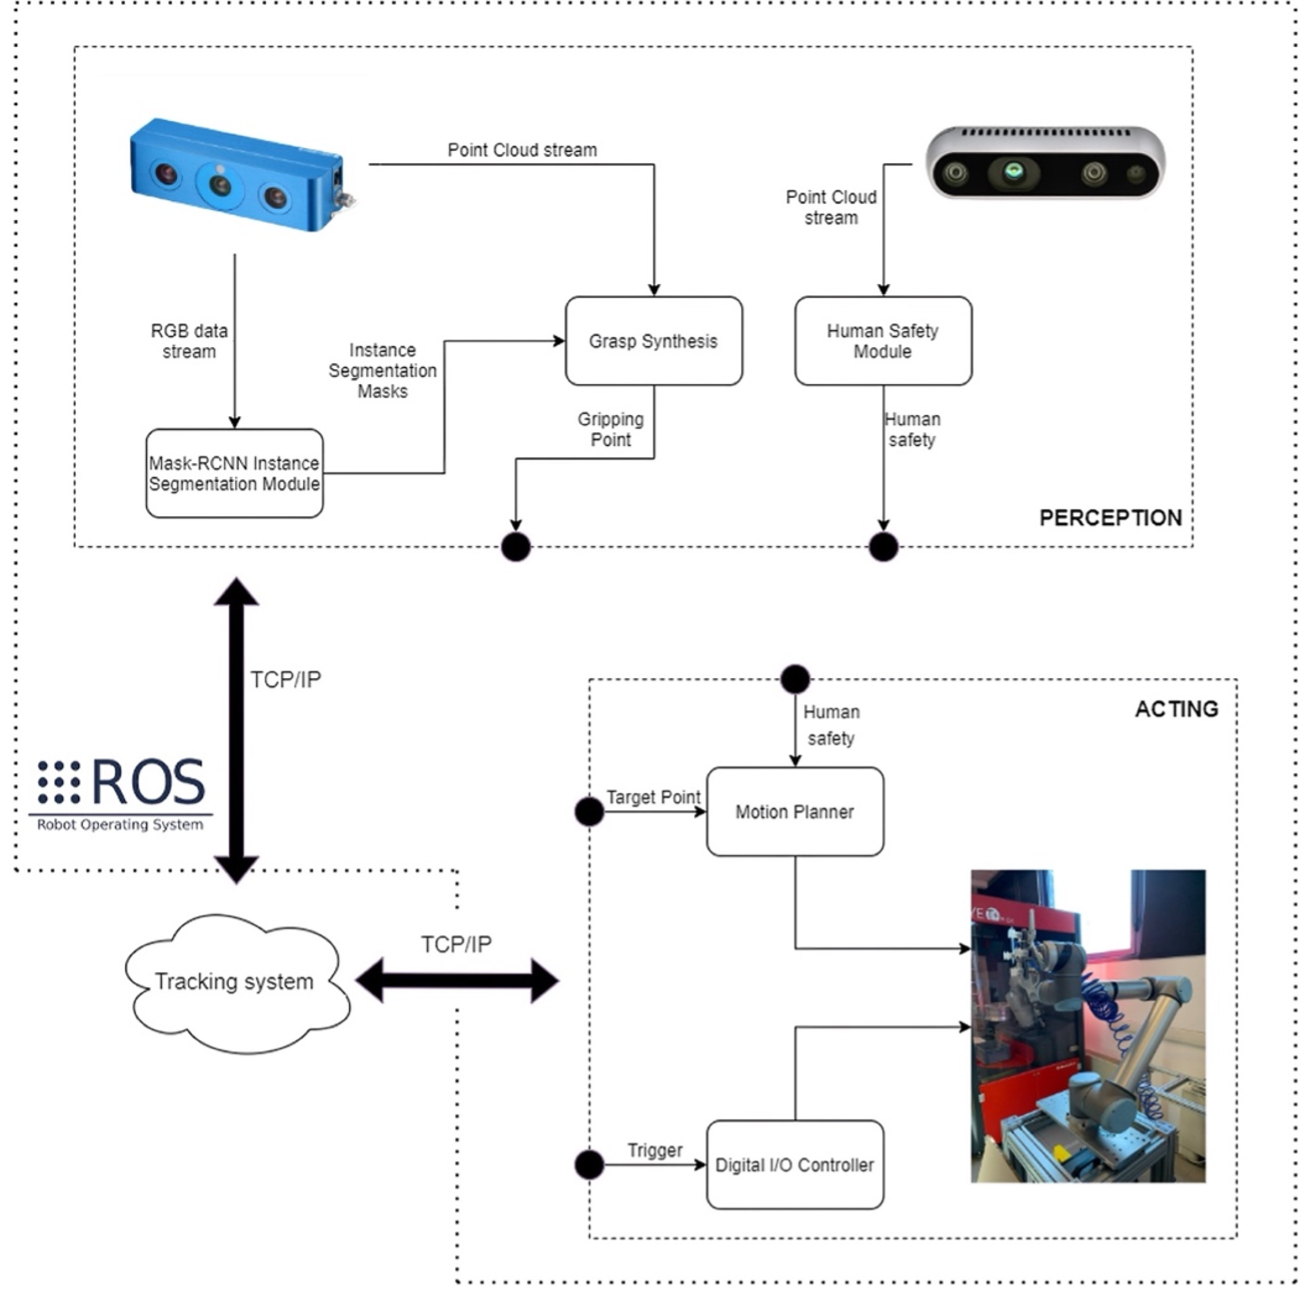 The main system modules and the data flow between them. The package tracking system act as an orchestrator and asks the robotic system to perform actions.